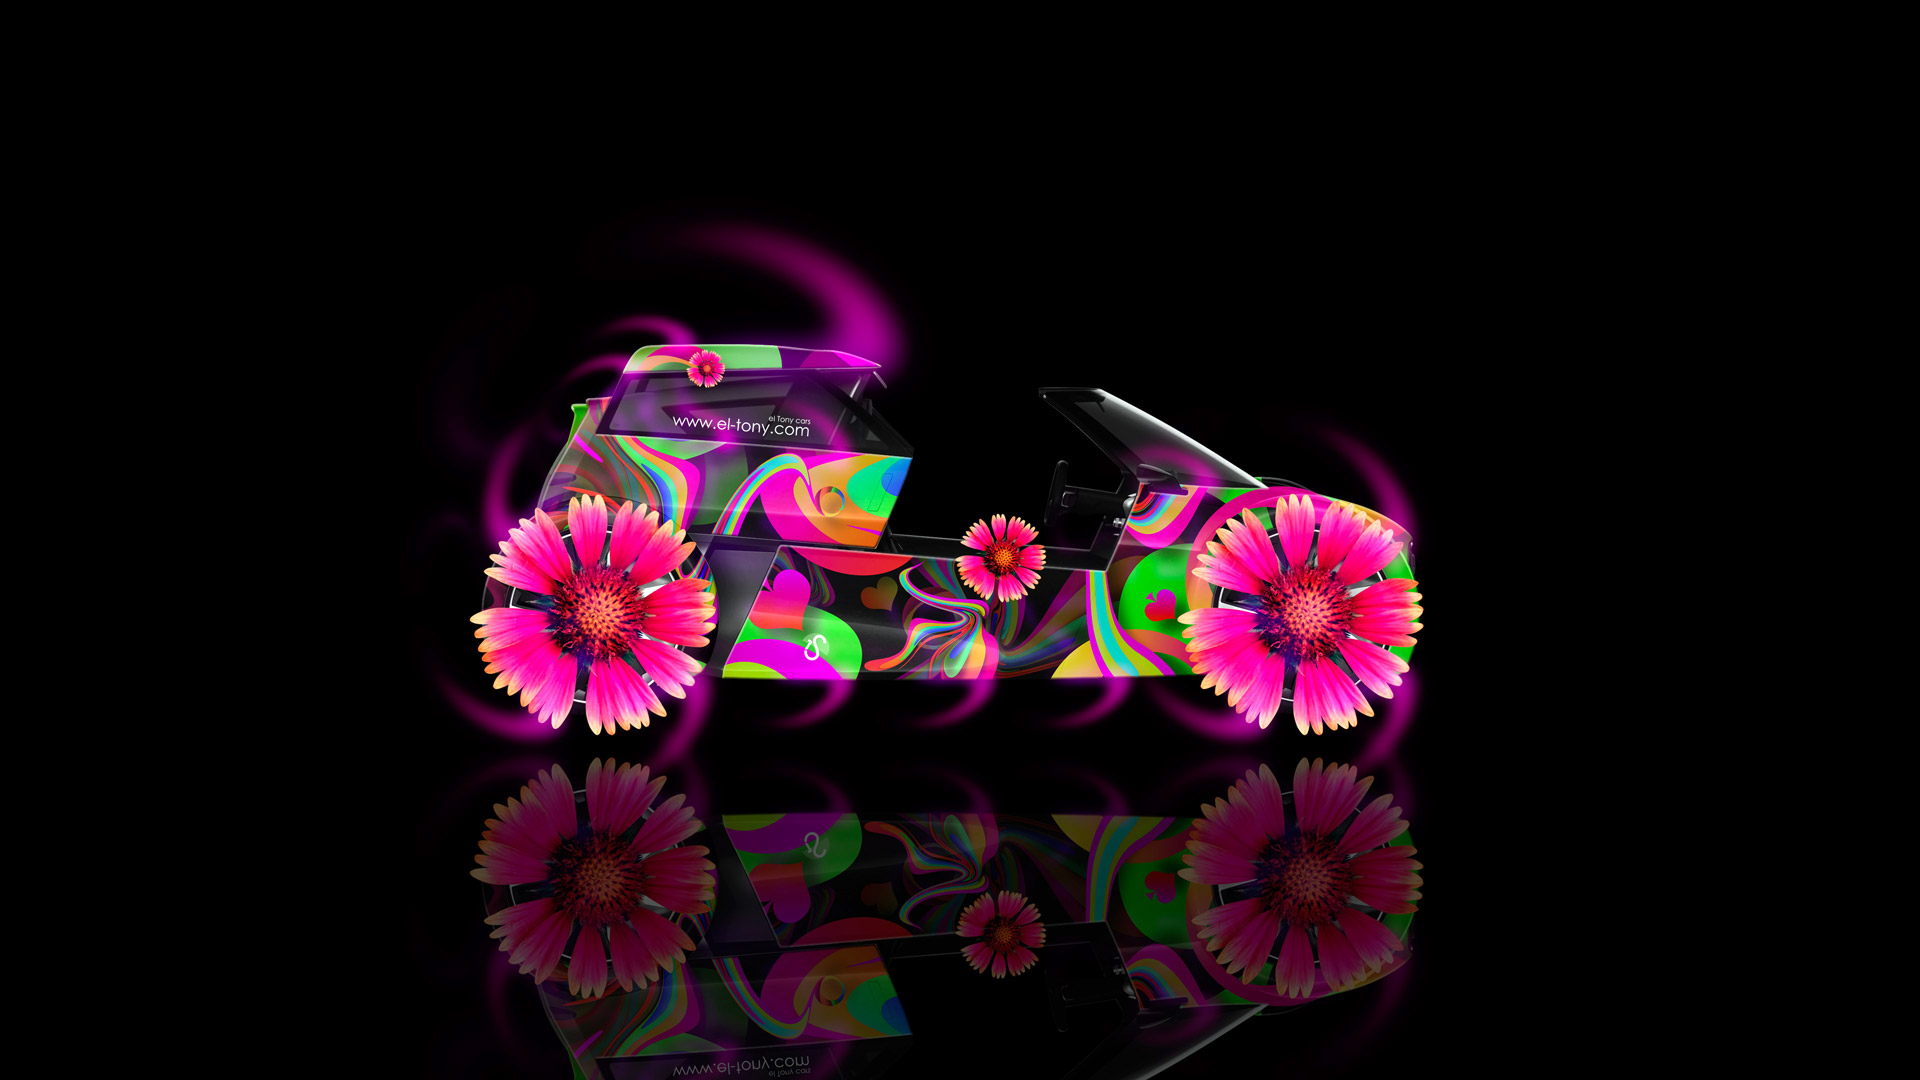 Perfect Gentil Audi Urban Side Fantasy Flowers Abstract Aerography Car